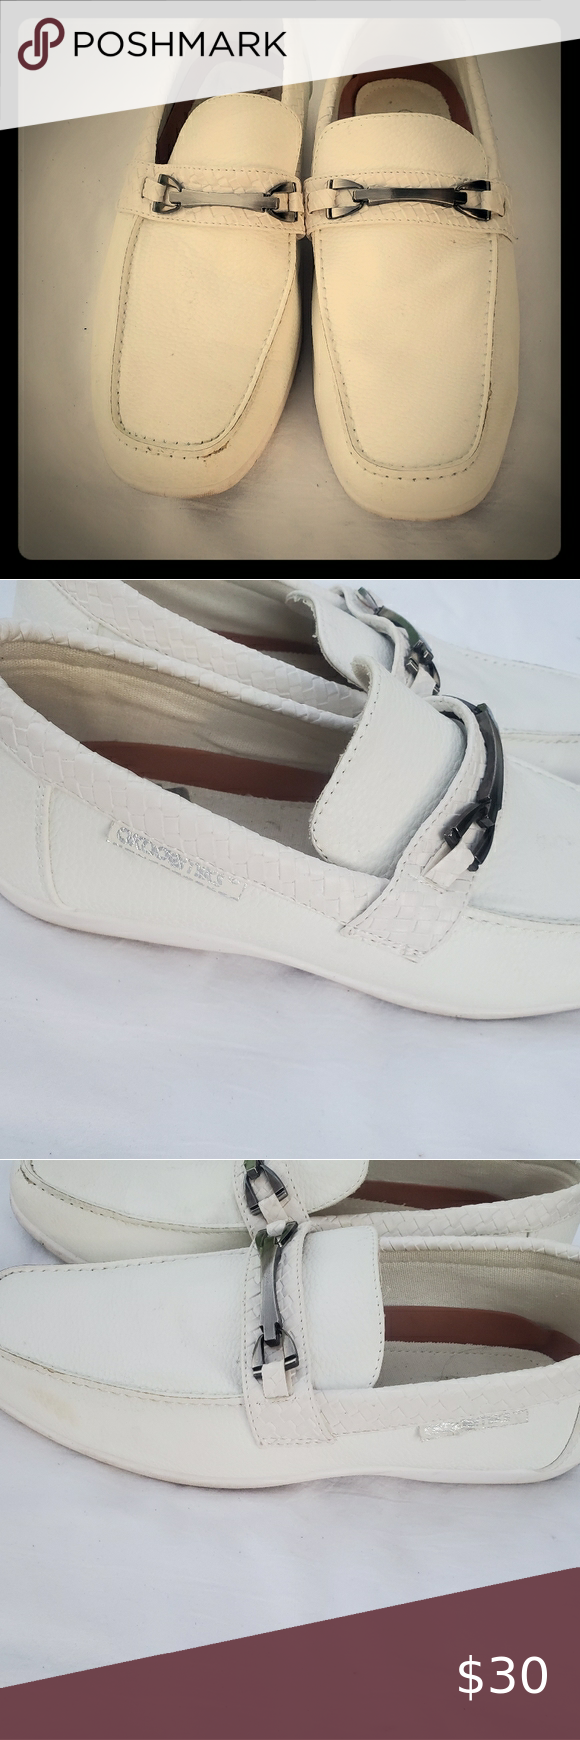 Men's White Akademiks Loafers / Slides / Dress Sho Men's White Akademiks Loafers / Slides / Dress Shoes, Size 9. Gently used, in very good condition! Akademiks Shoes Loafers & Slip-Ons